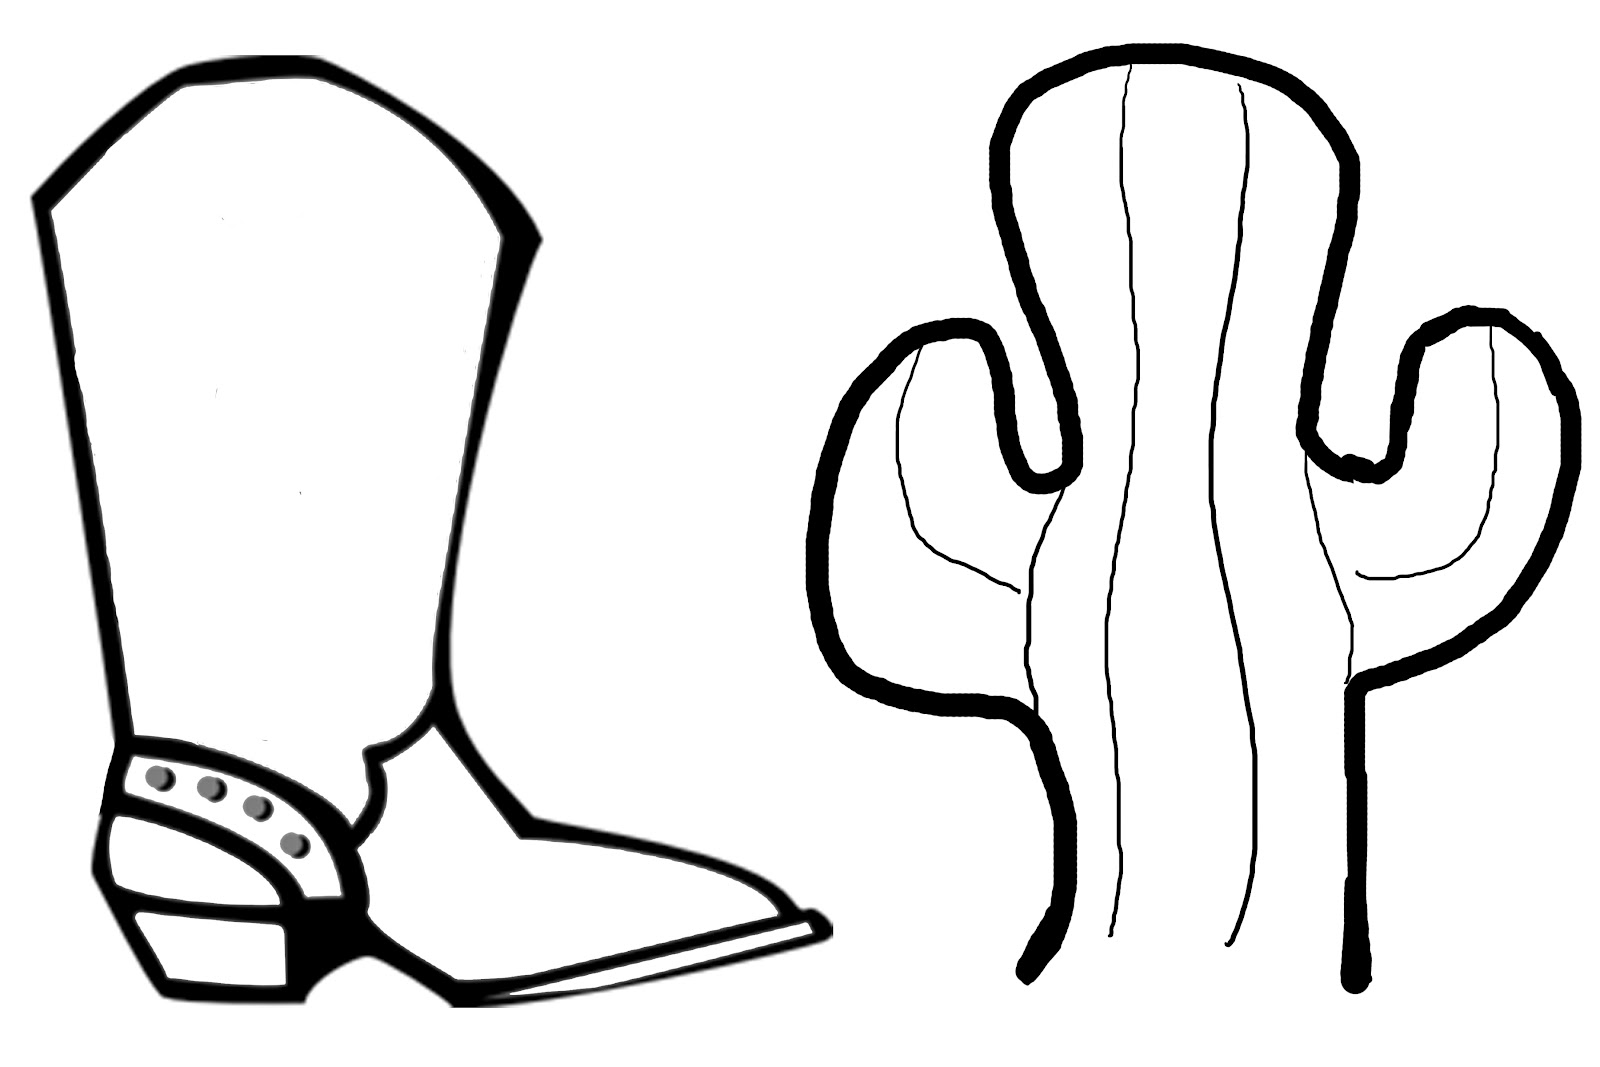 coloring pages boots cowboy boot coloring sheet coloringmecom coloring boots pages